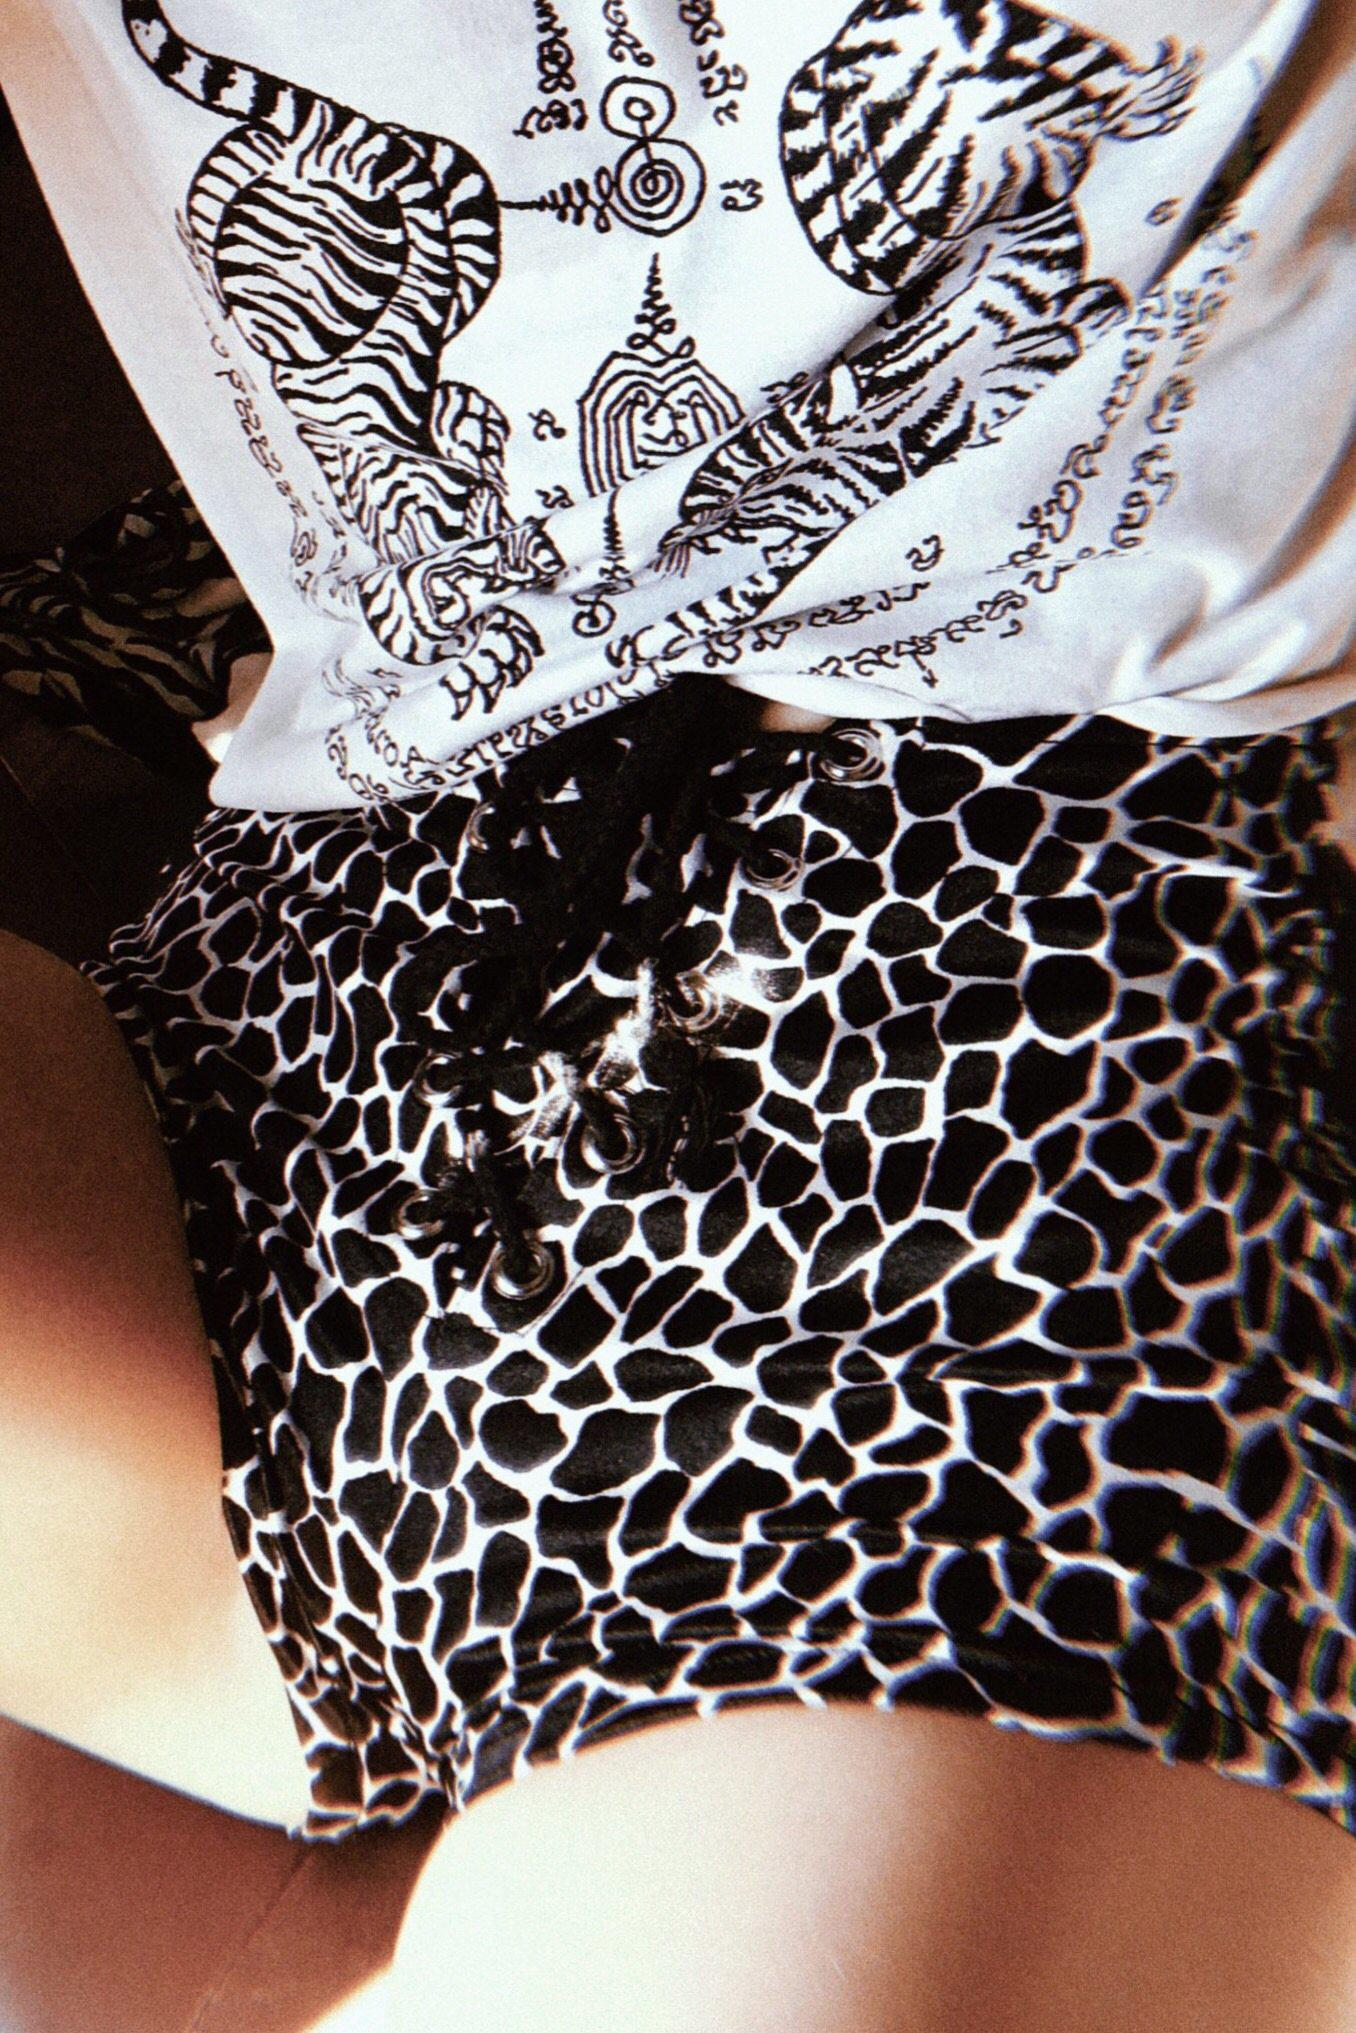 Wild Animal Nylon Spandex Grommet Shorts Size XS・IN STOCK